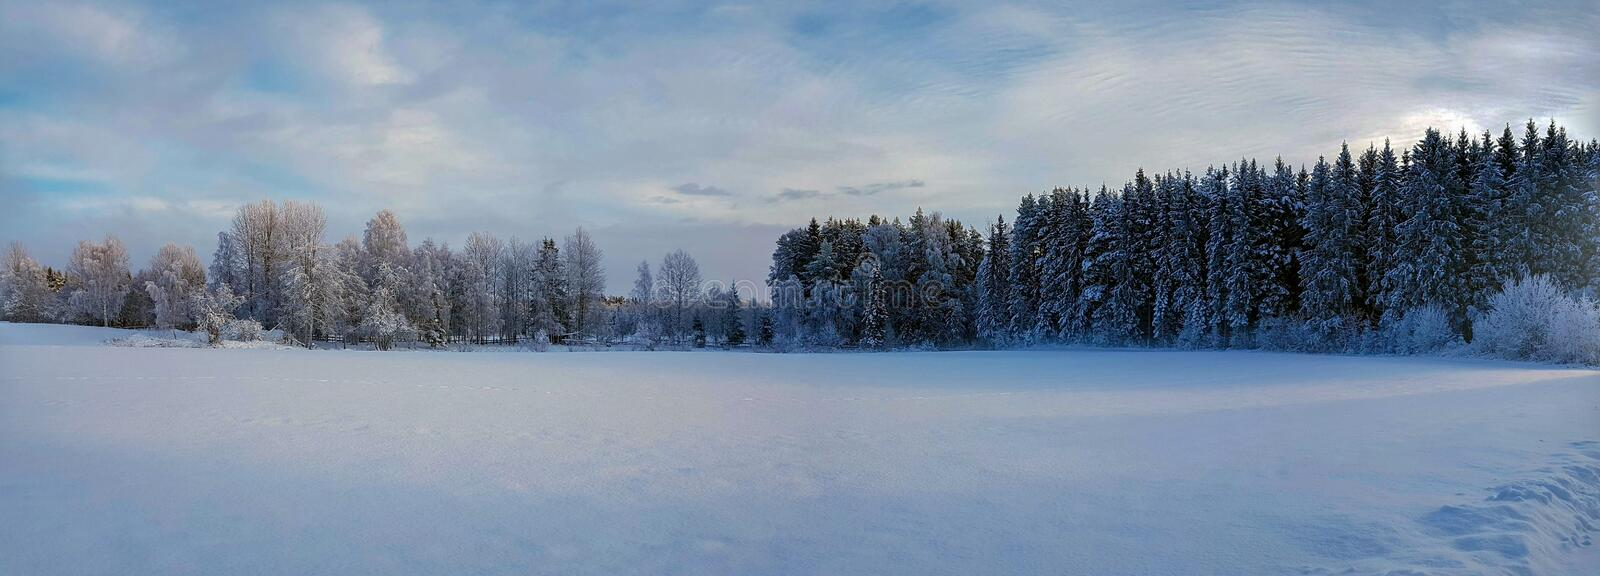 Panorama photo of winter landscape in Hedmark county Norway royalty free stock photos